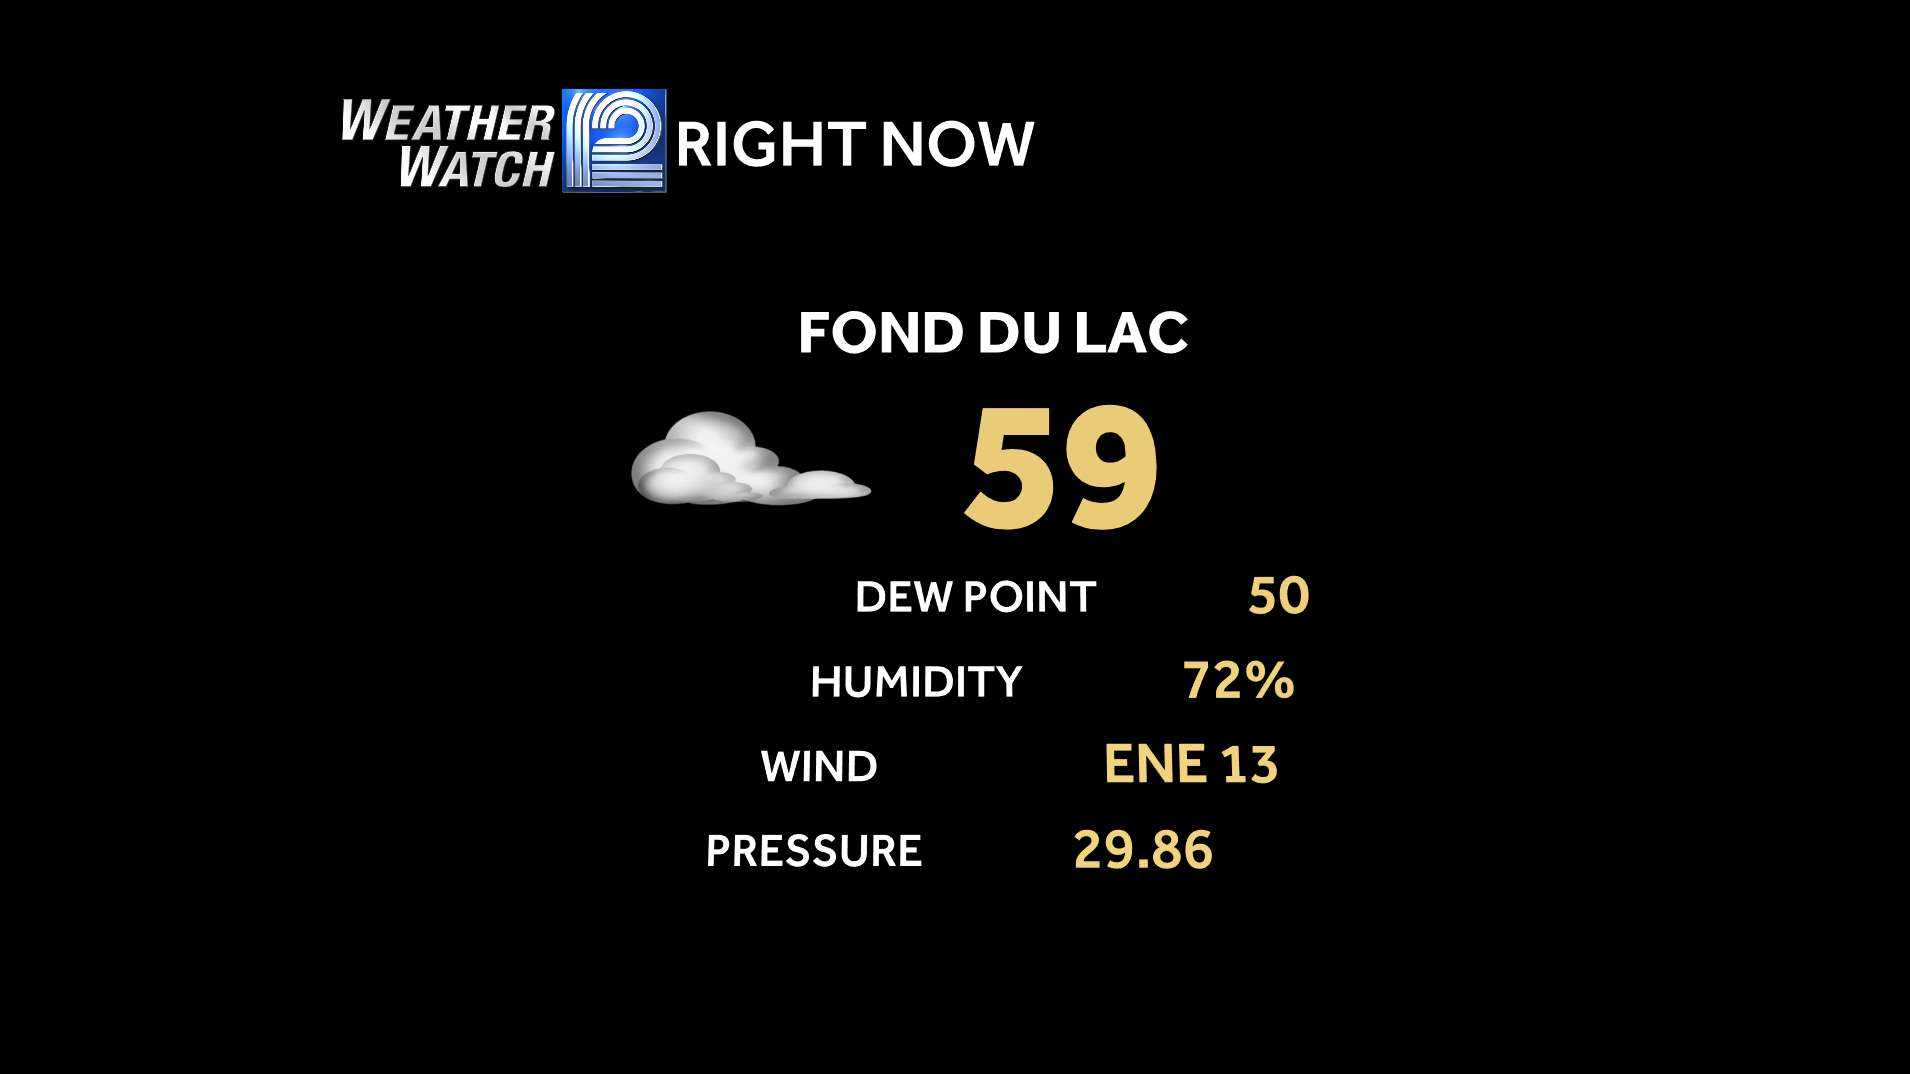 Fond du Lac temperature